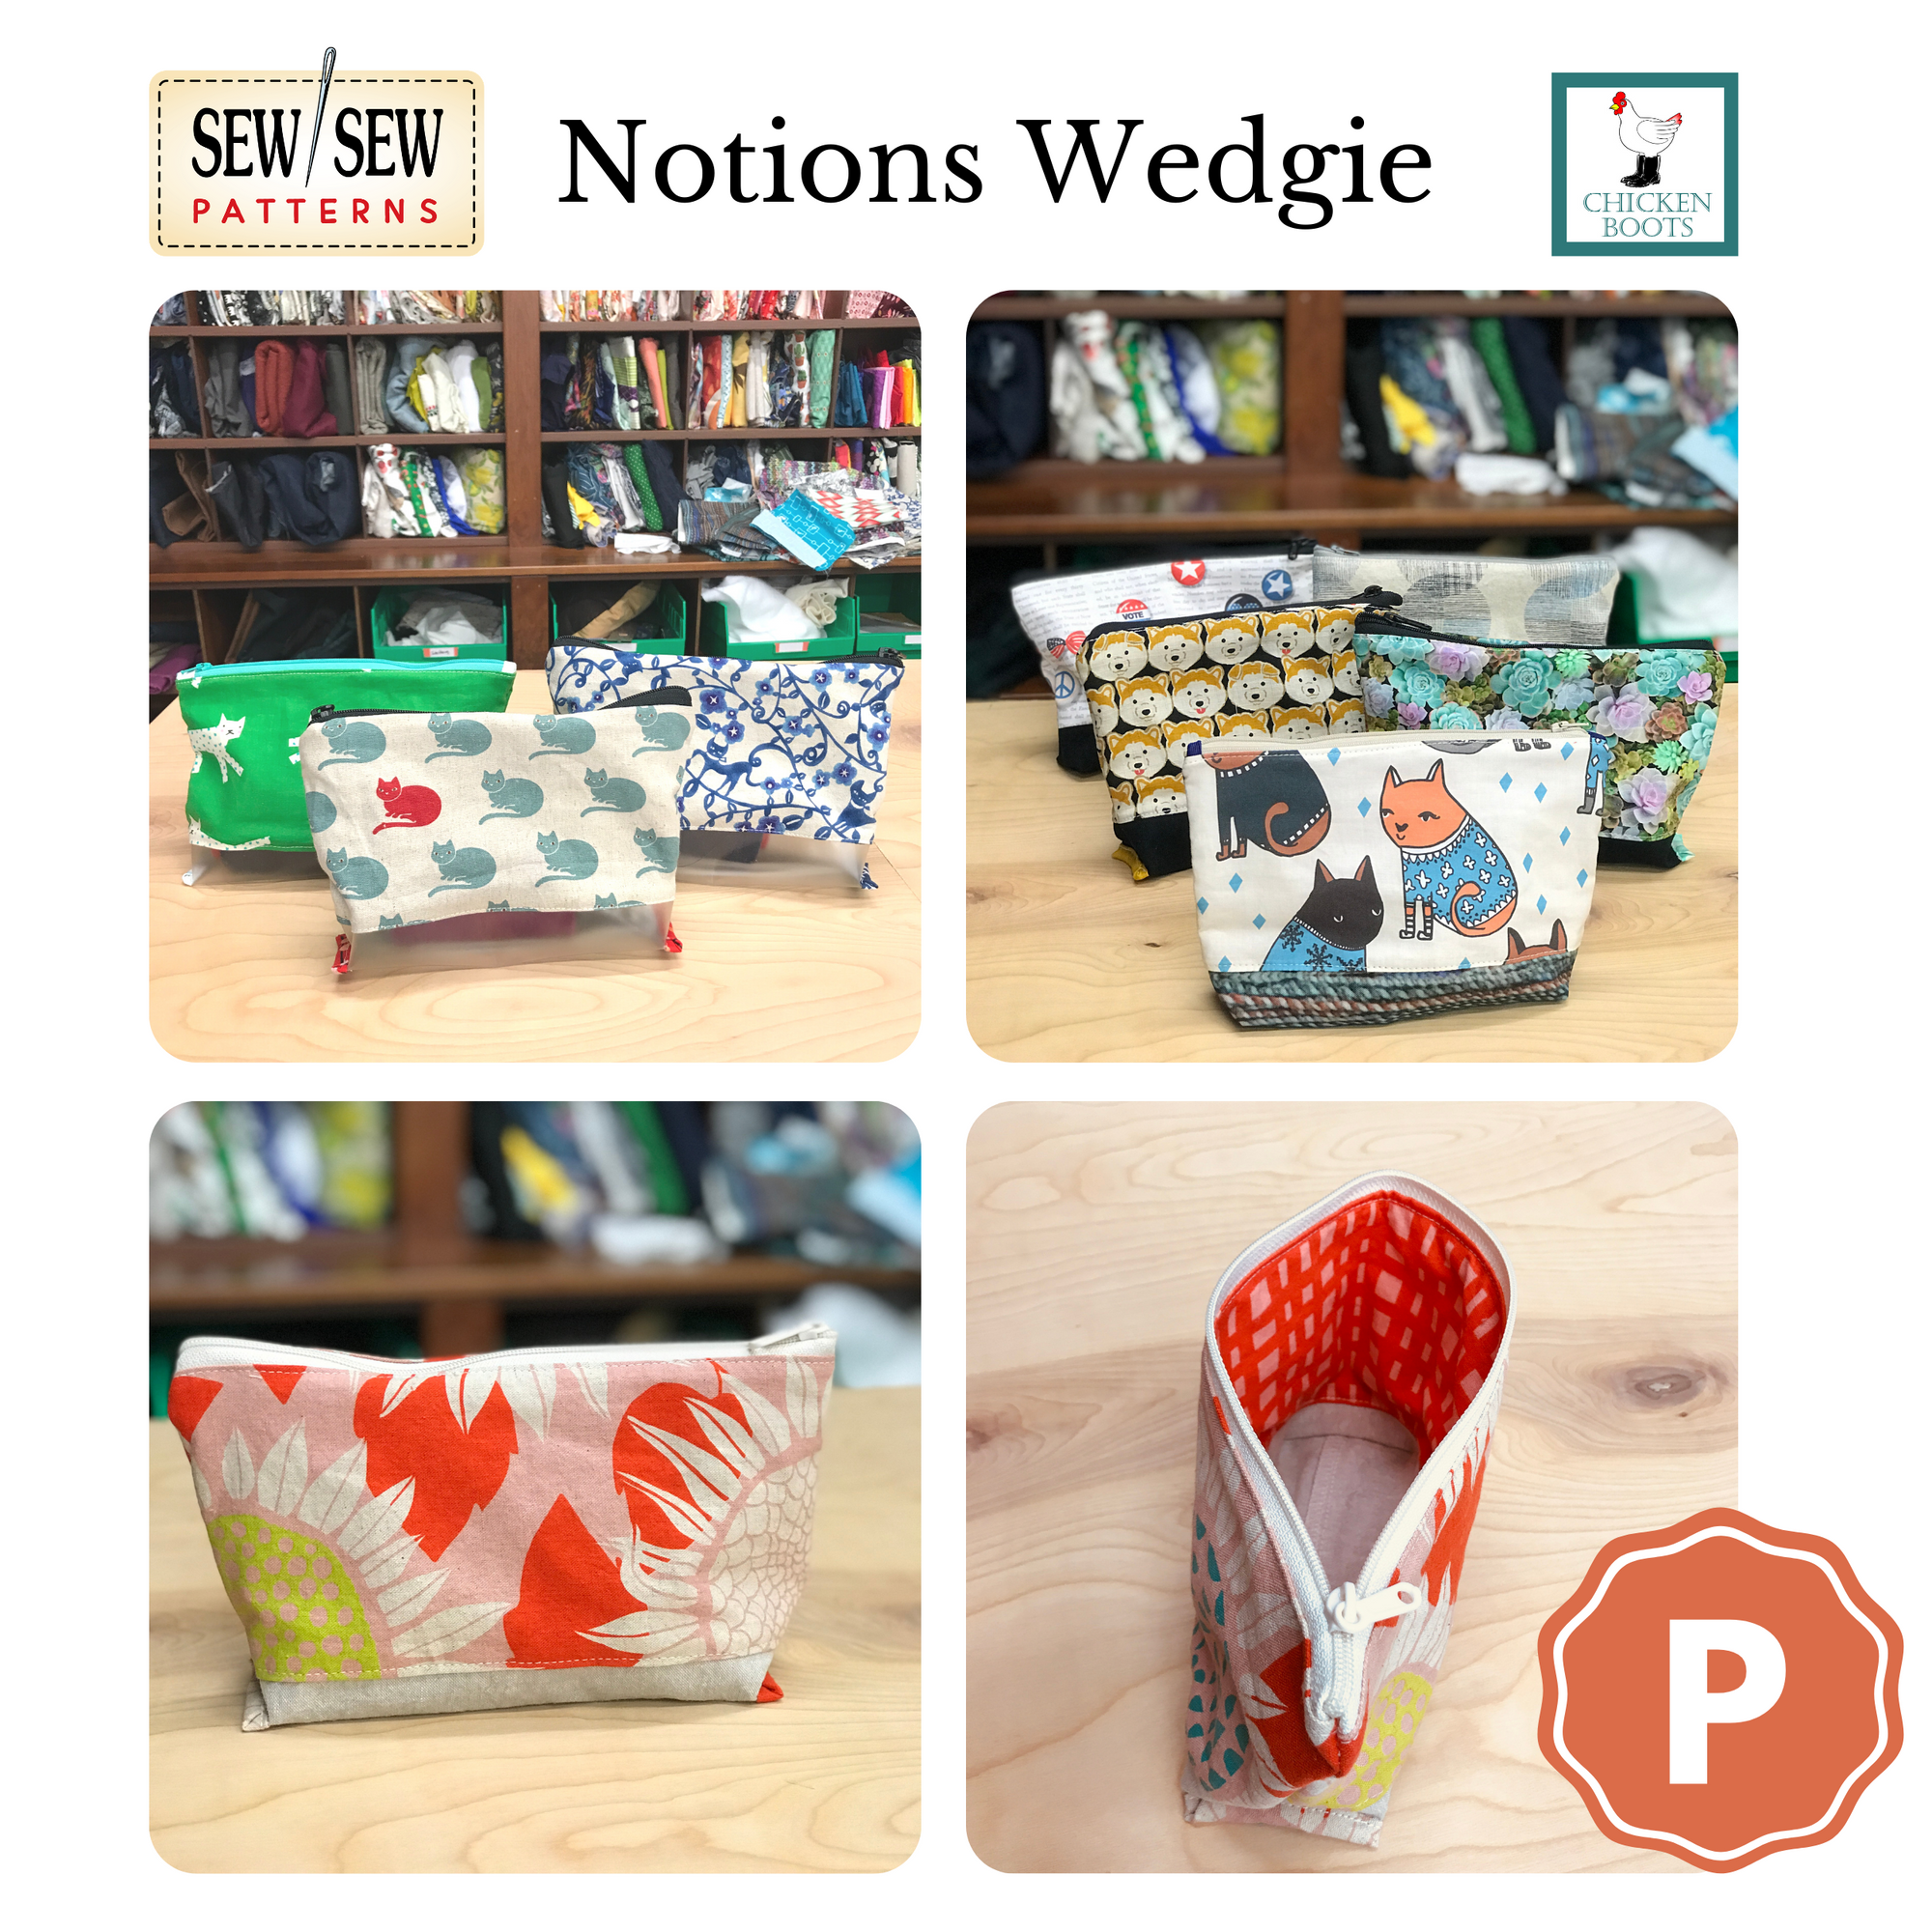 Notions Wedgie by Sew Sew Patterns